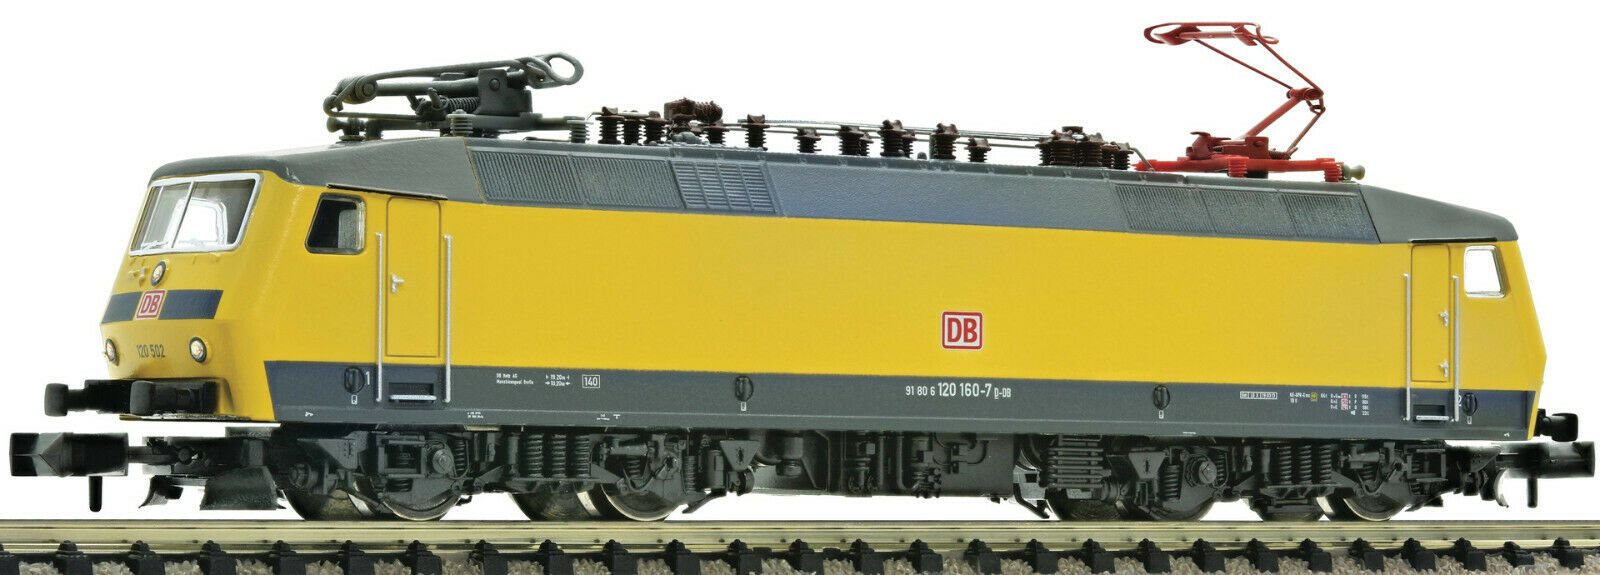 Fleischmann N 735303 Electric Locomotive Br 120 160-7 Db Ag - New +Box